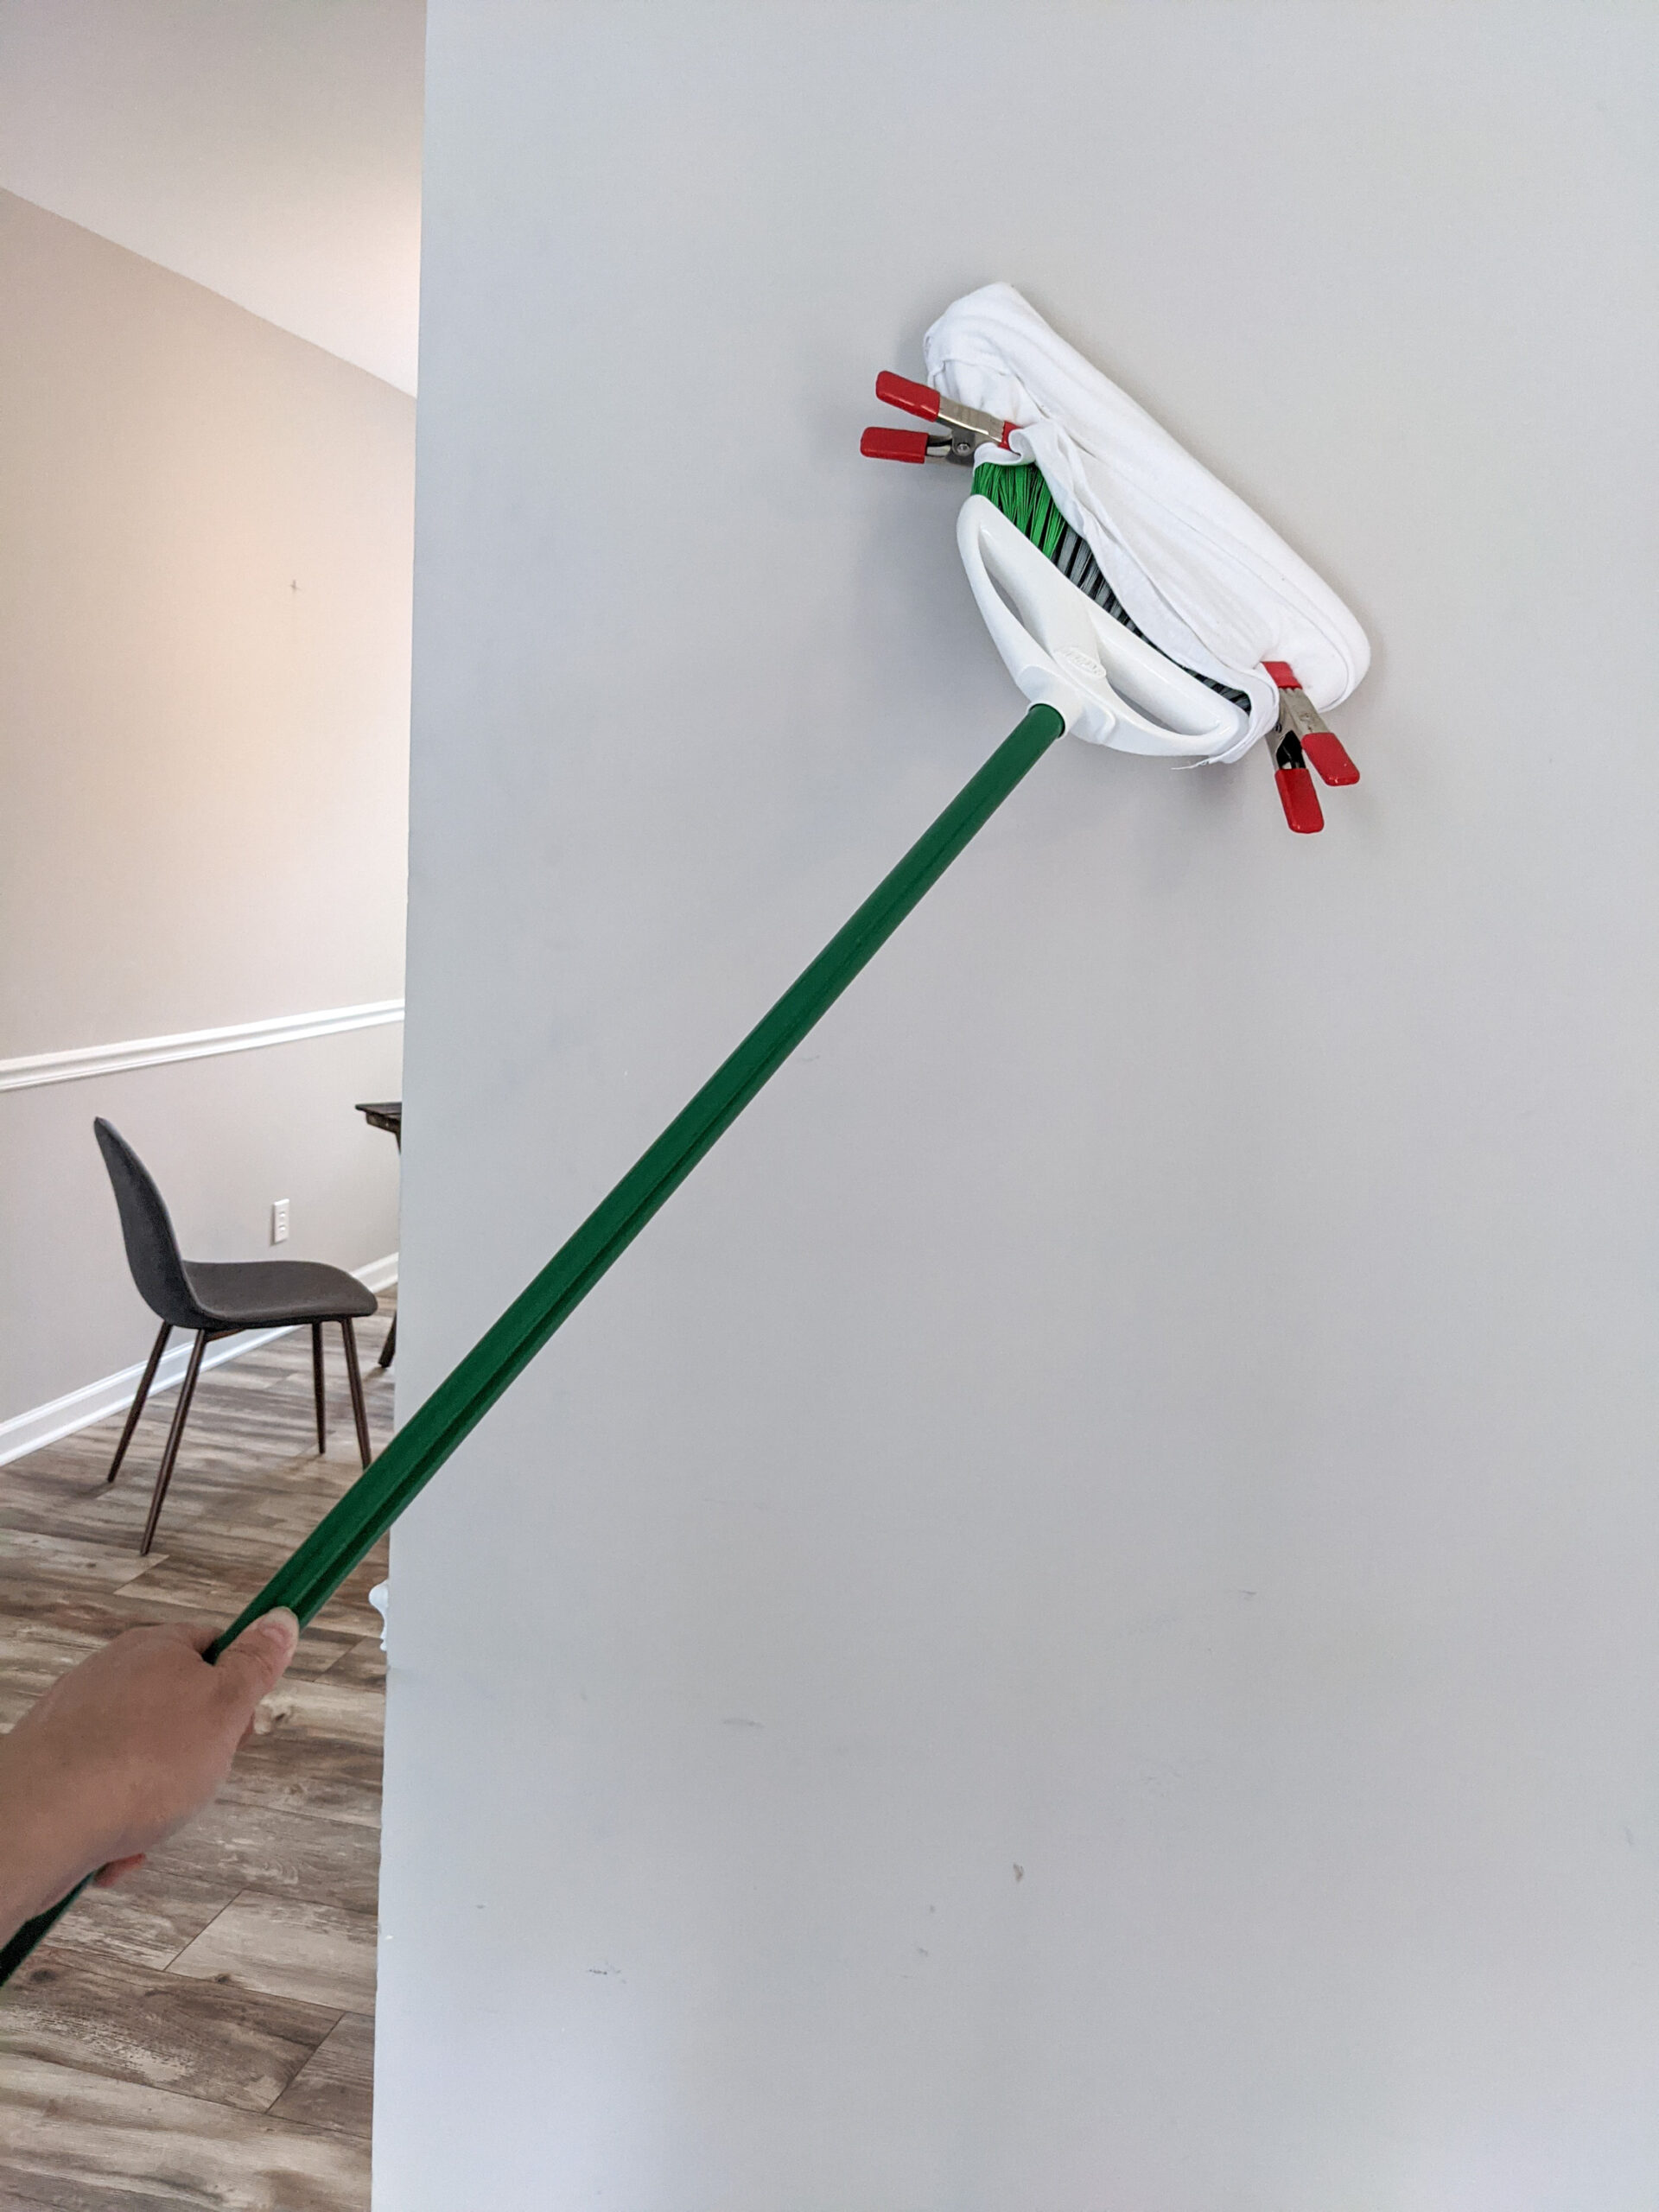 A wall being cleaned with a modified broom.